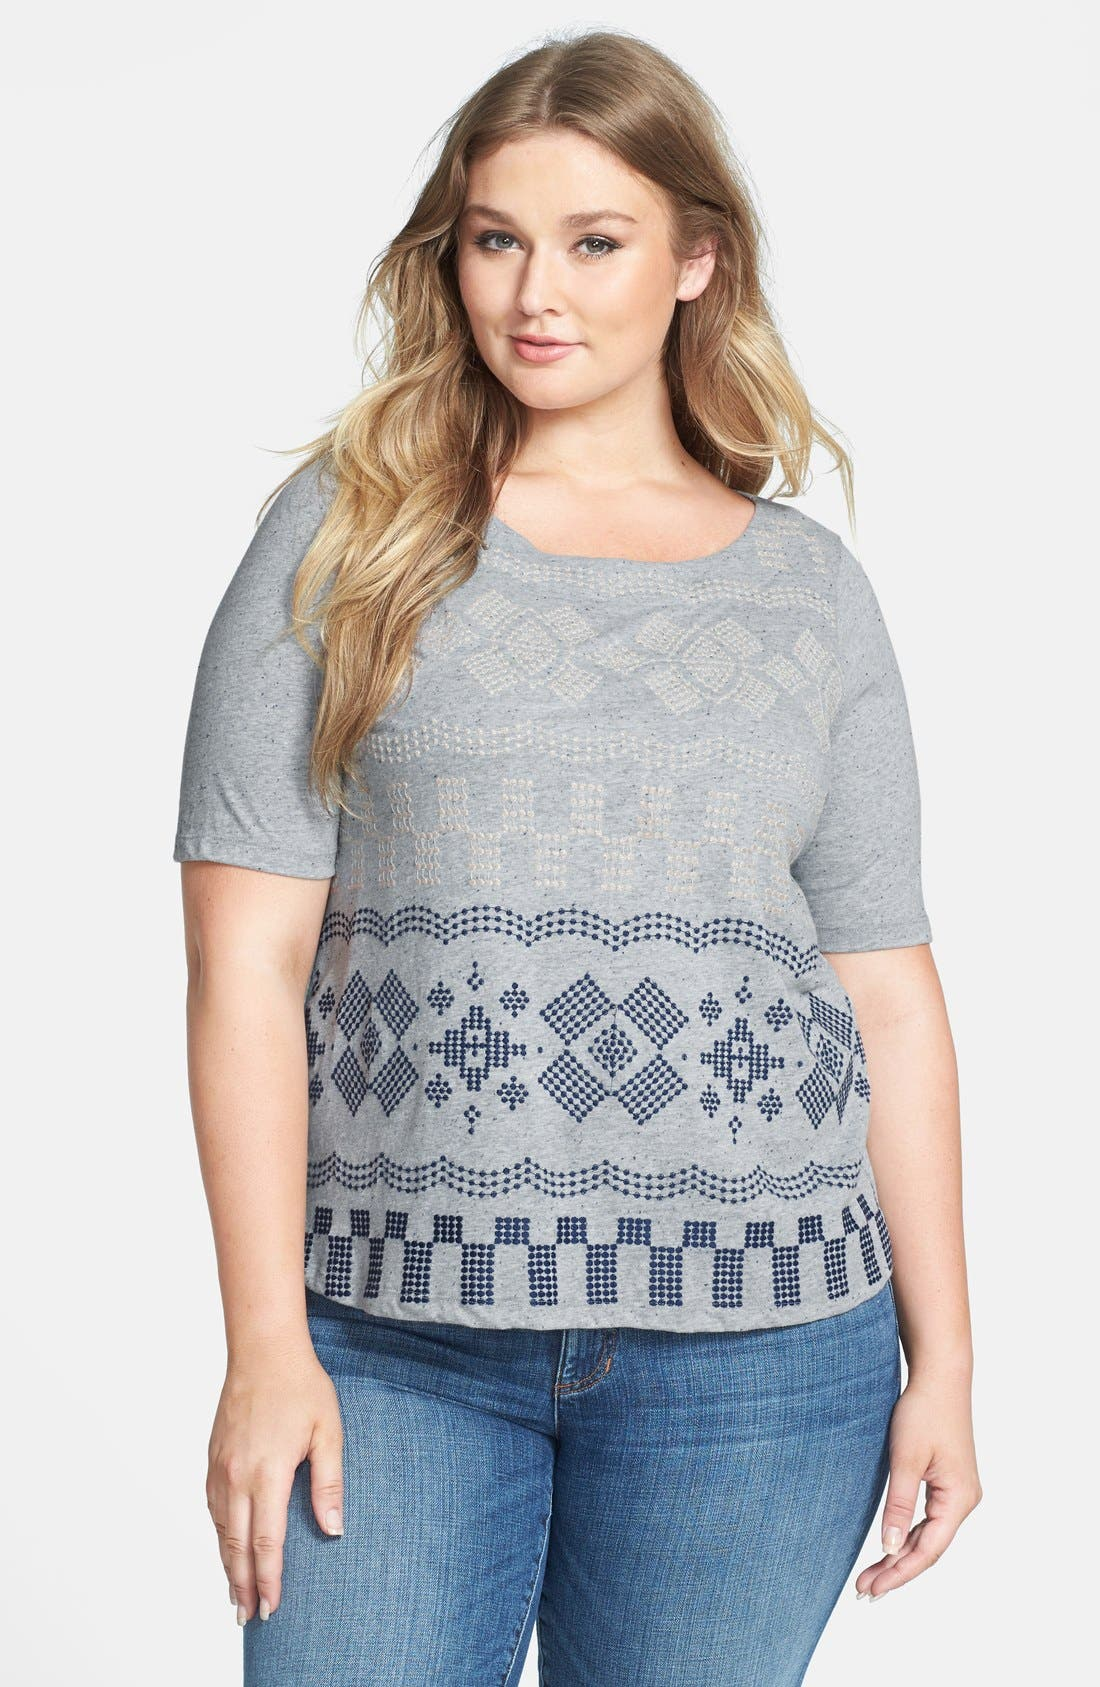 Alternate Image 1 Selected - Lucky Brand 'Faye' Embroidered Boatneck Tee (Plus Size)